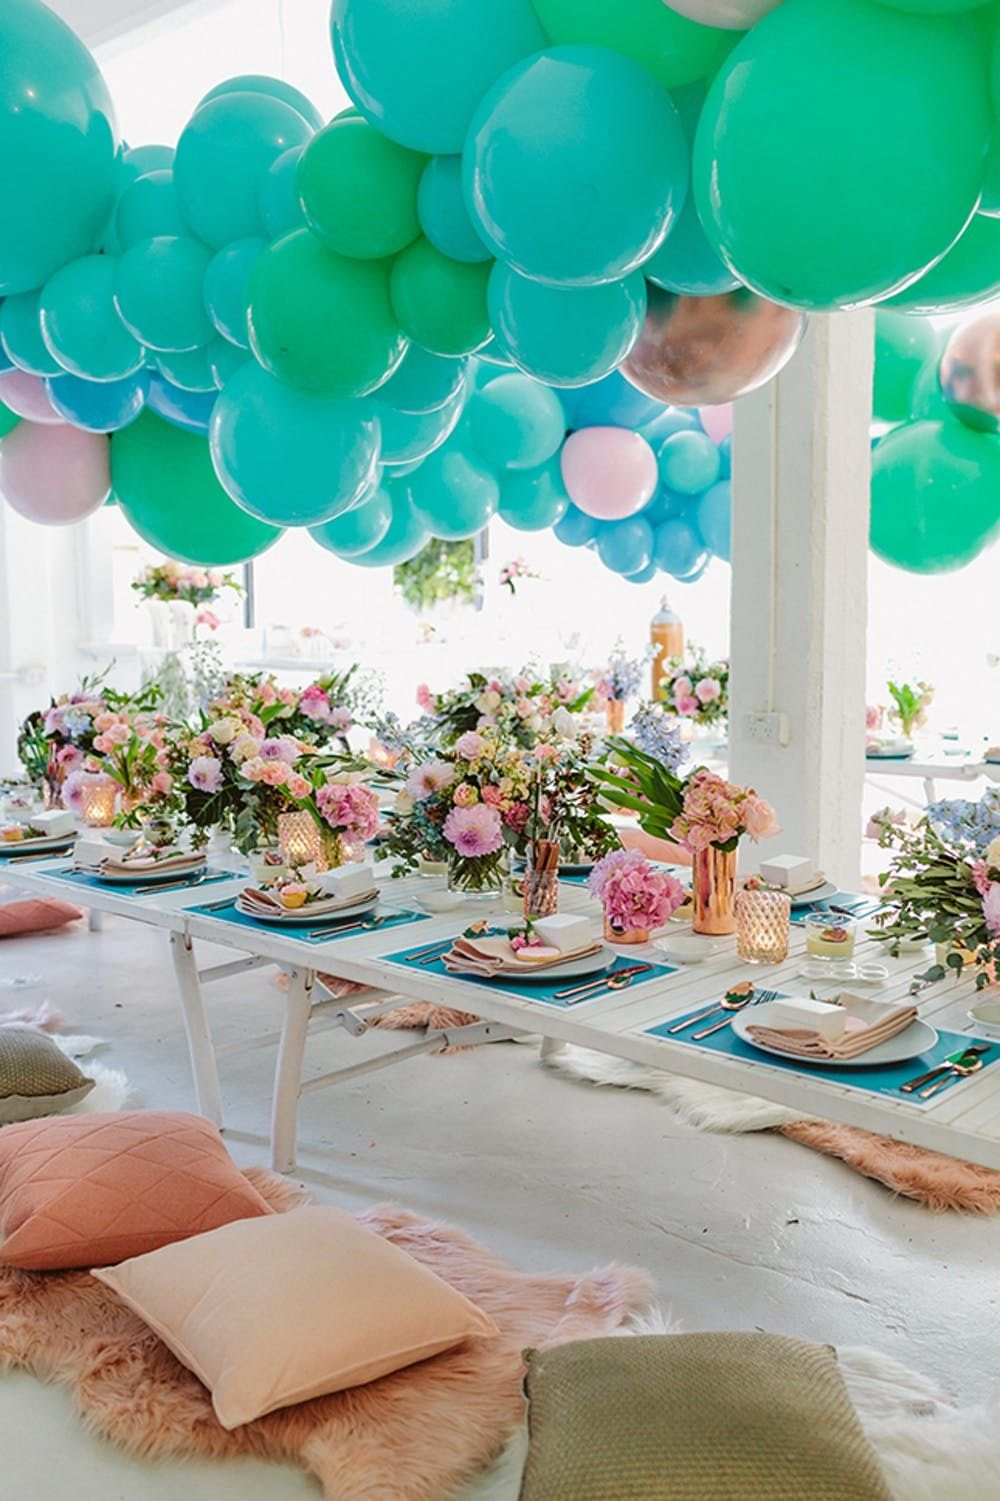 Wedding Balloon Displays Are Our New Decor Crush Brit Co